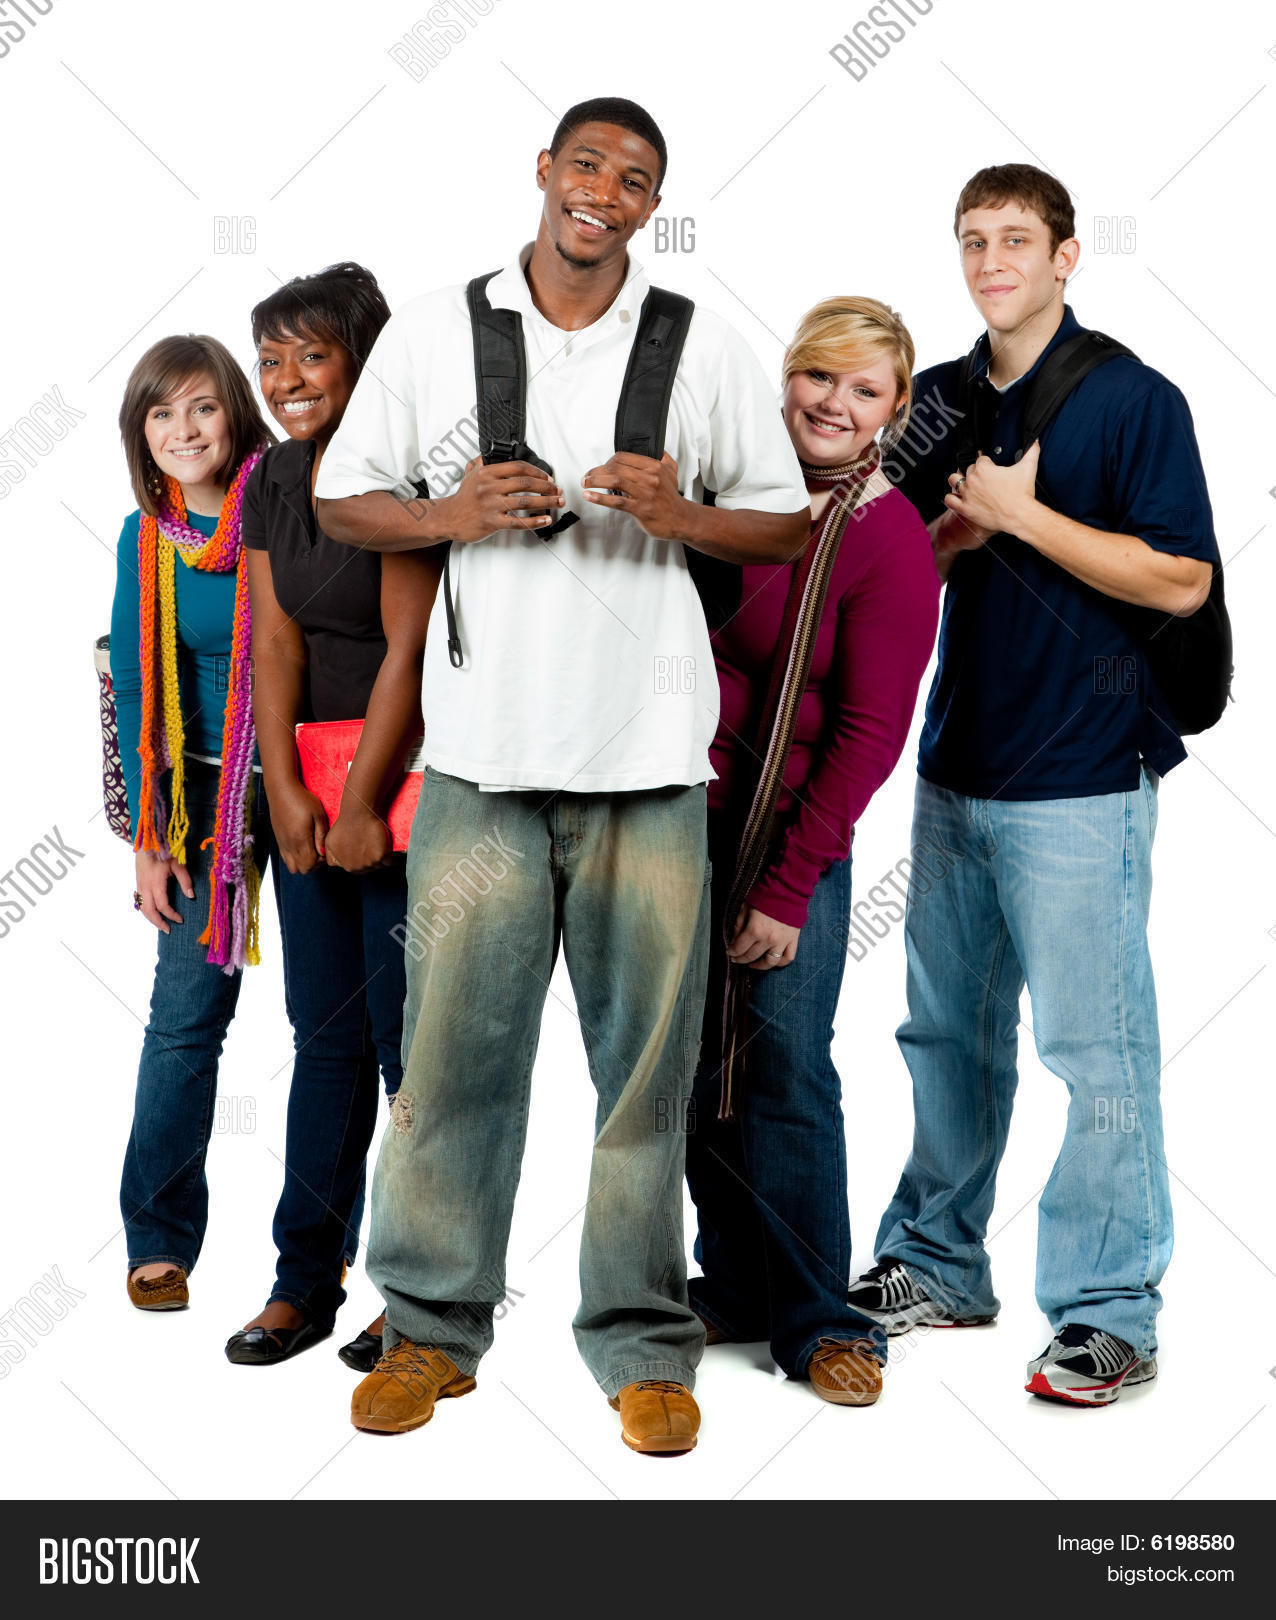 18,20s,adult,african,african american man,african american people,american,background,beautiful,blond,blue,brunnette,campus,casual,caucasian,cheerful,class,college,college student,college students,color,colour,diverse,diverse students,diversity,education,female,friendly,friends,girl,group,group of students,happy,happy students,image,indoors,learning,men,orange,people,person,red,school,sitting,smile,smiling,students,teamwork,together,twenties,university,white,women,young